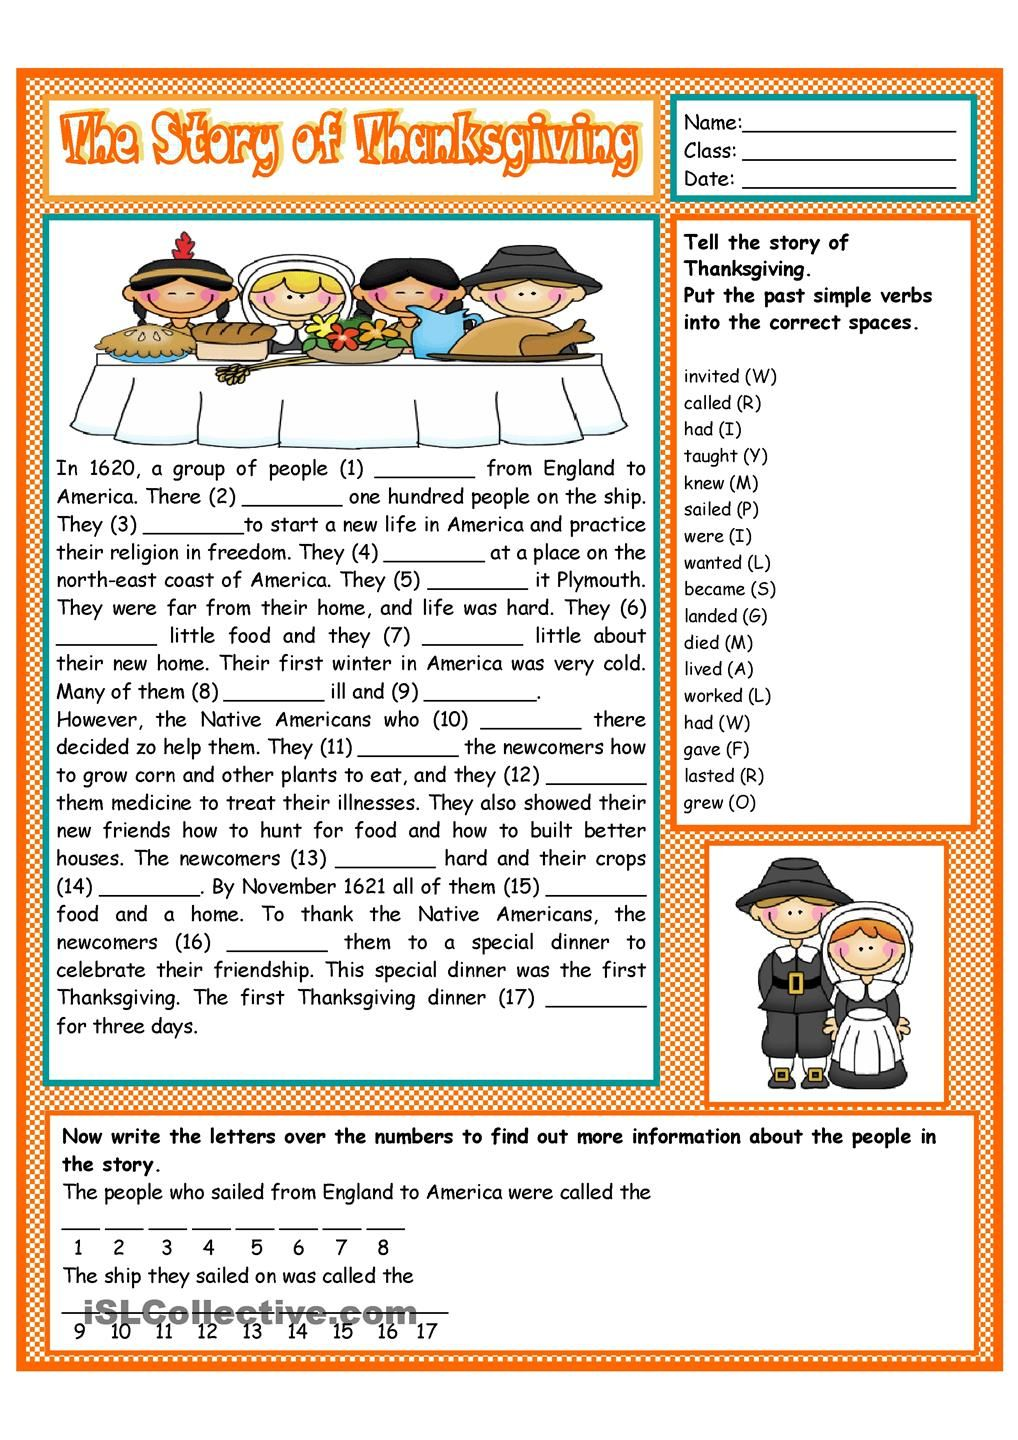 small resolution of The Story of Thanksgiving   Thanksgiving reading comprehension